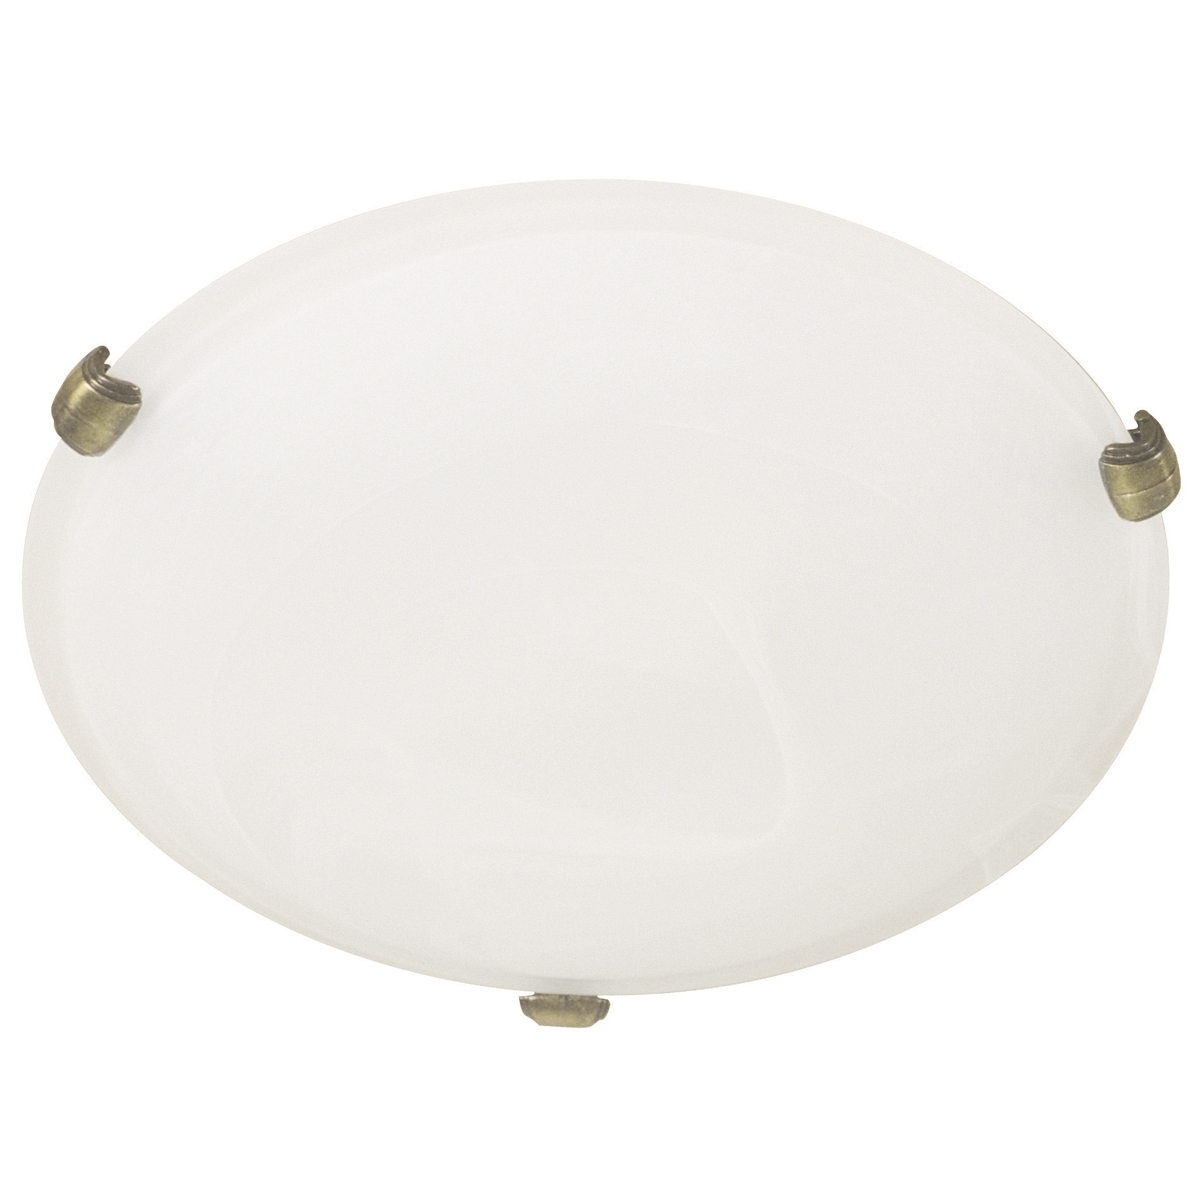 Steinhauer Ceiling And Wall Plaf. Glas, 2361BR